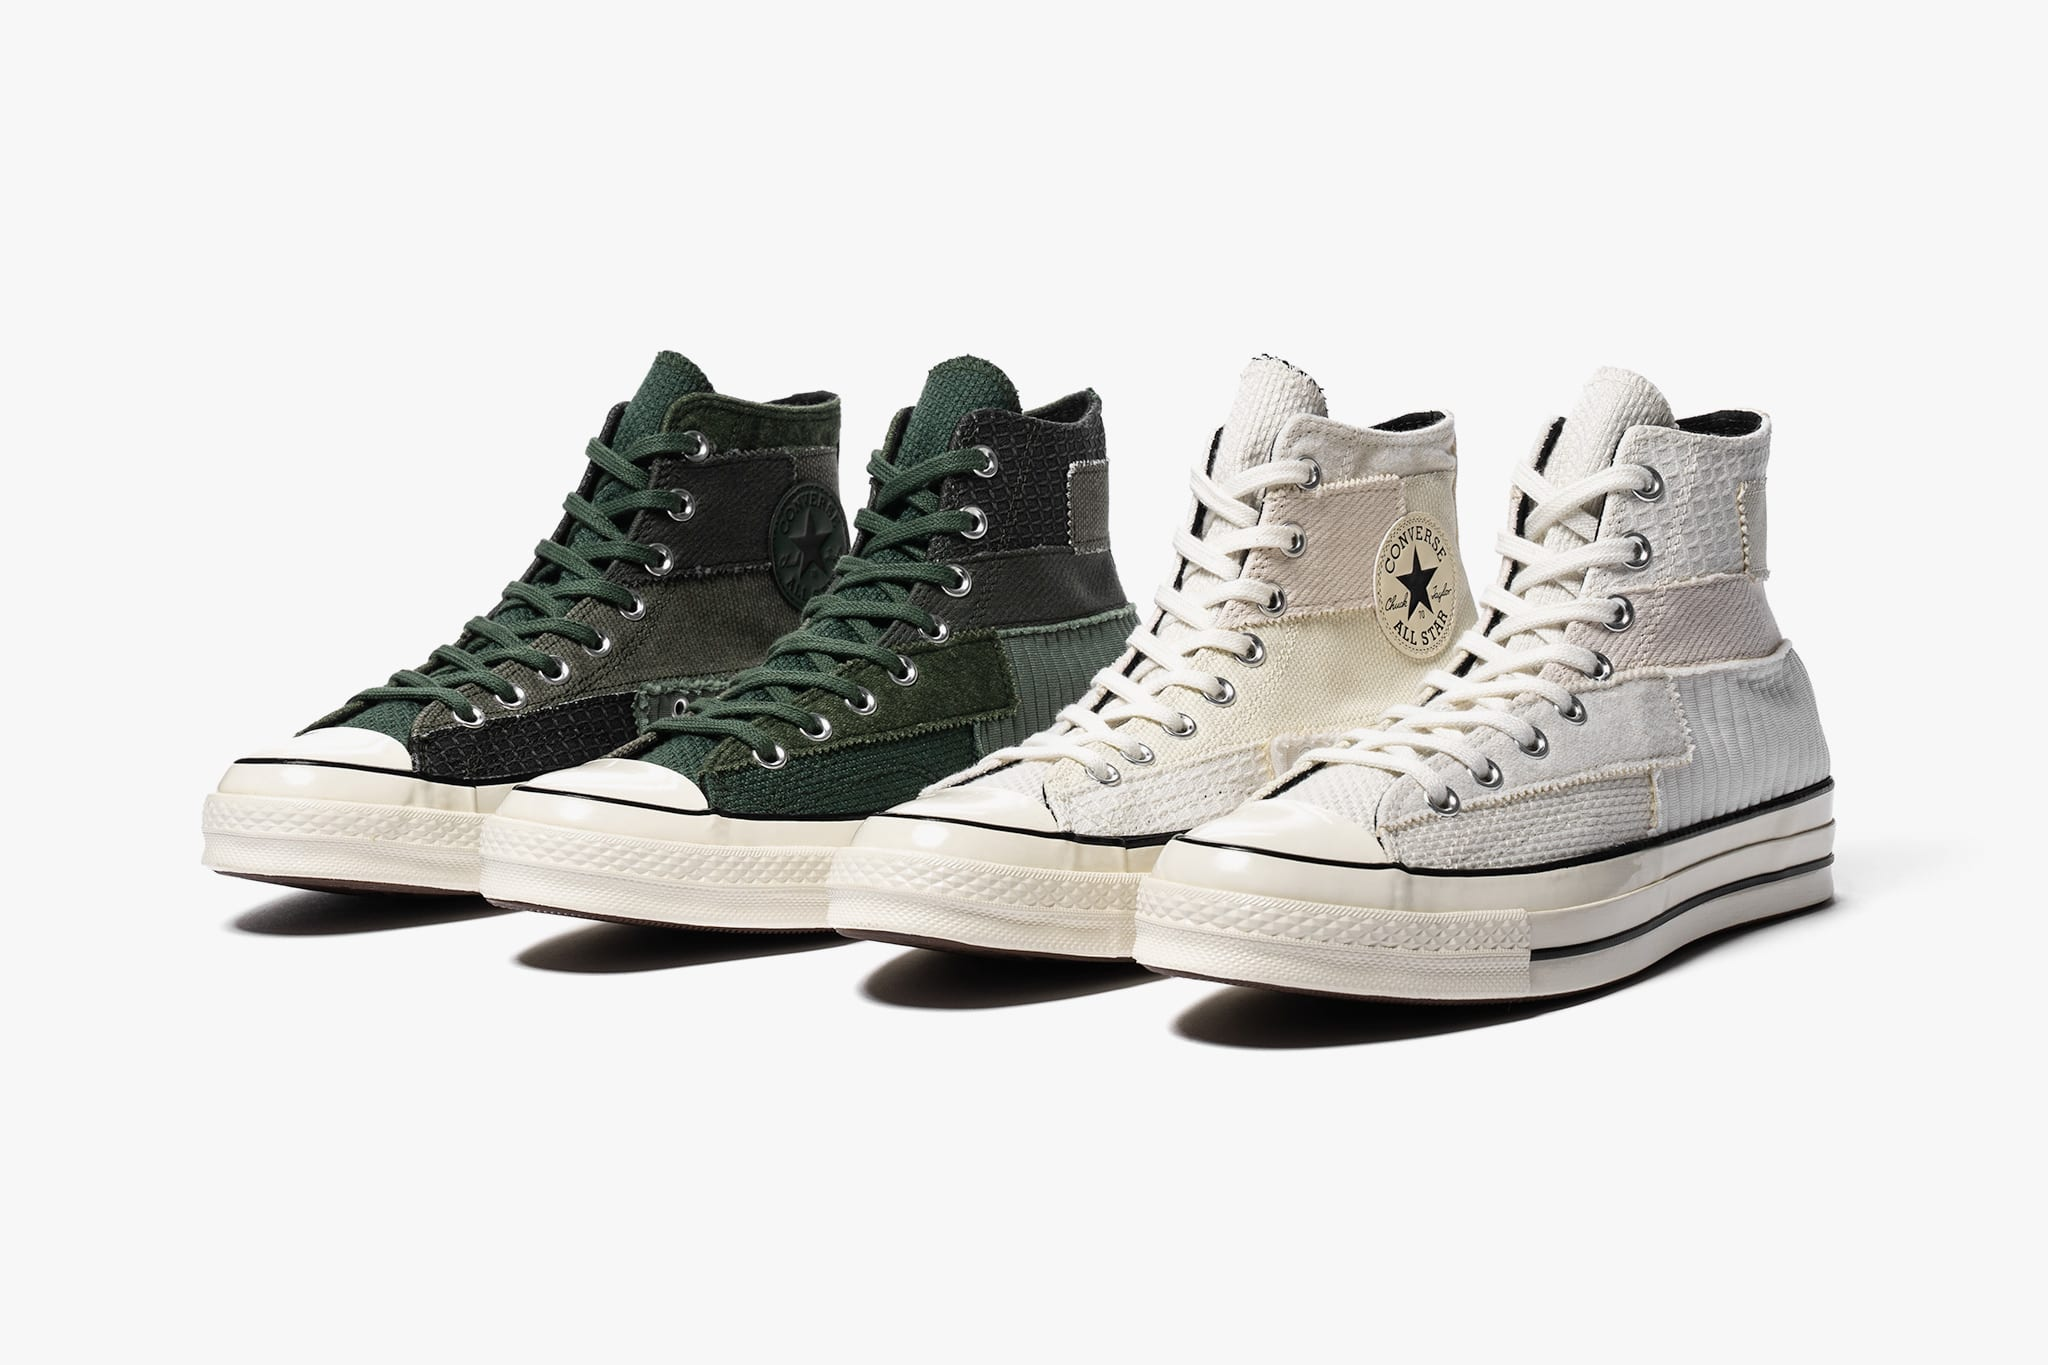 CONVERSE Chuck Taylor Mono Patch SS20 NEW ARRIVALS HAVEN